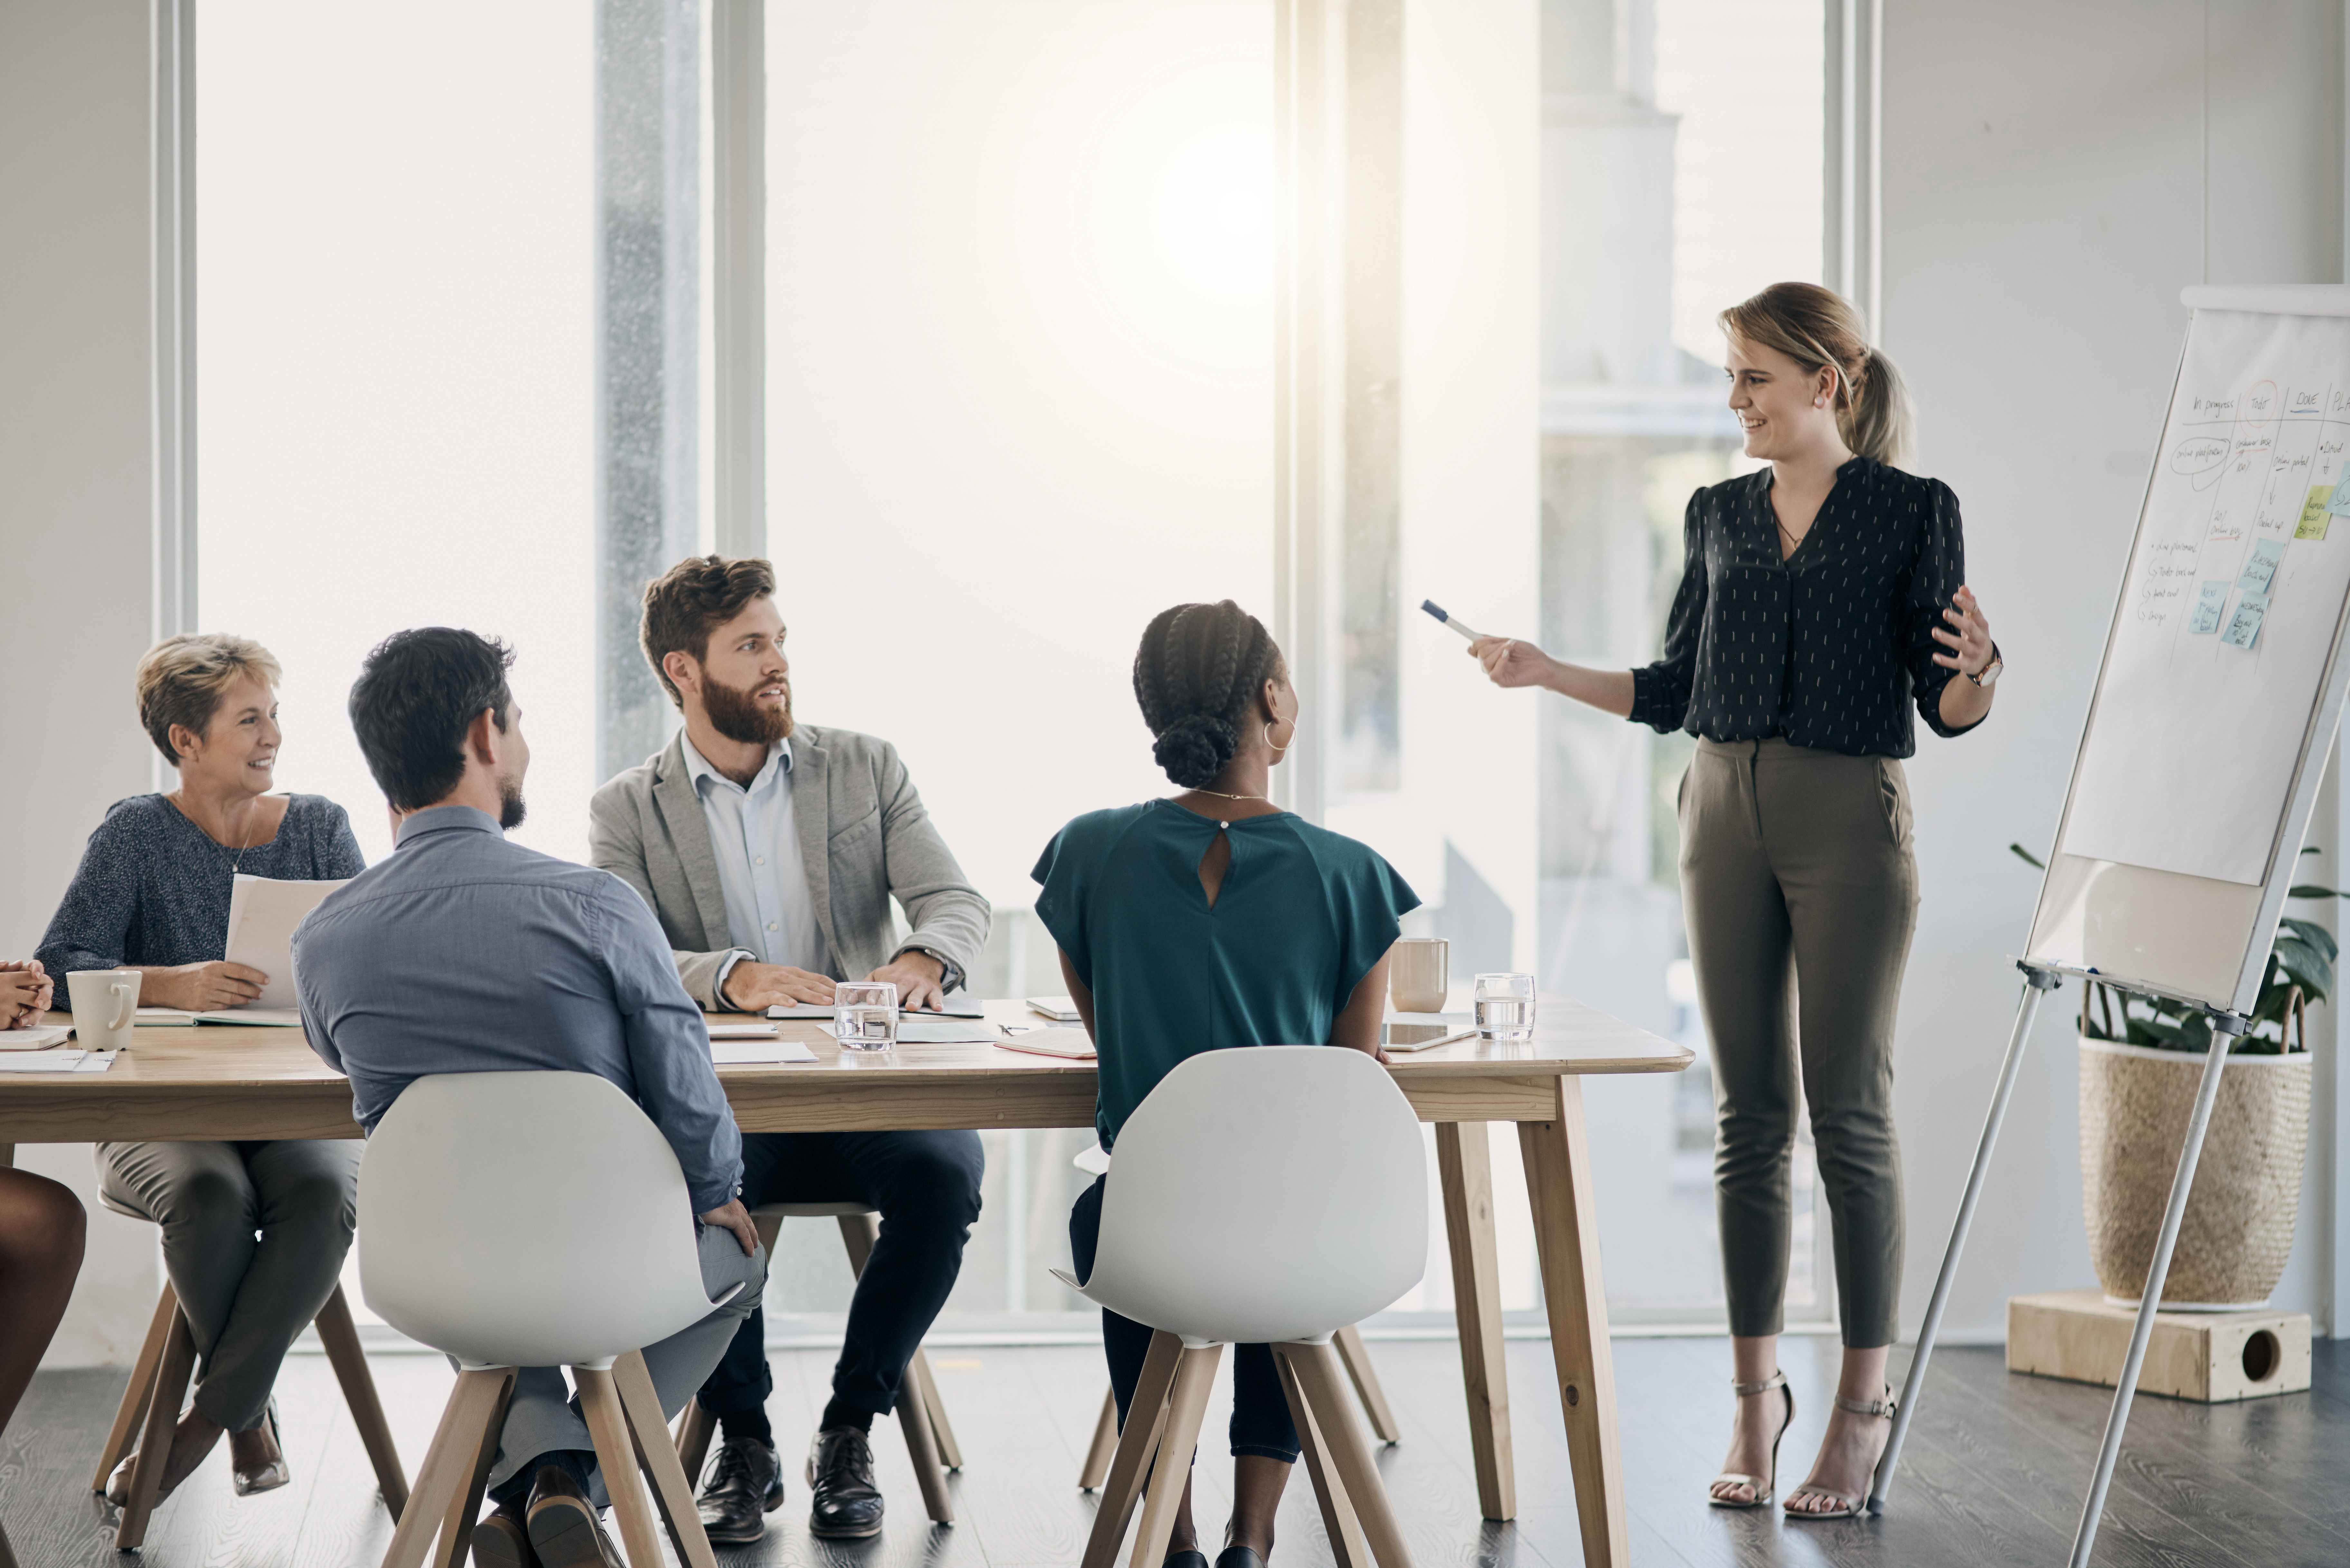 Shot of a young businesswoman giving a presentation to her colleagues in an office